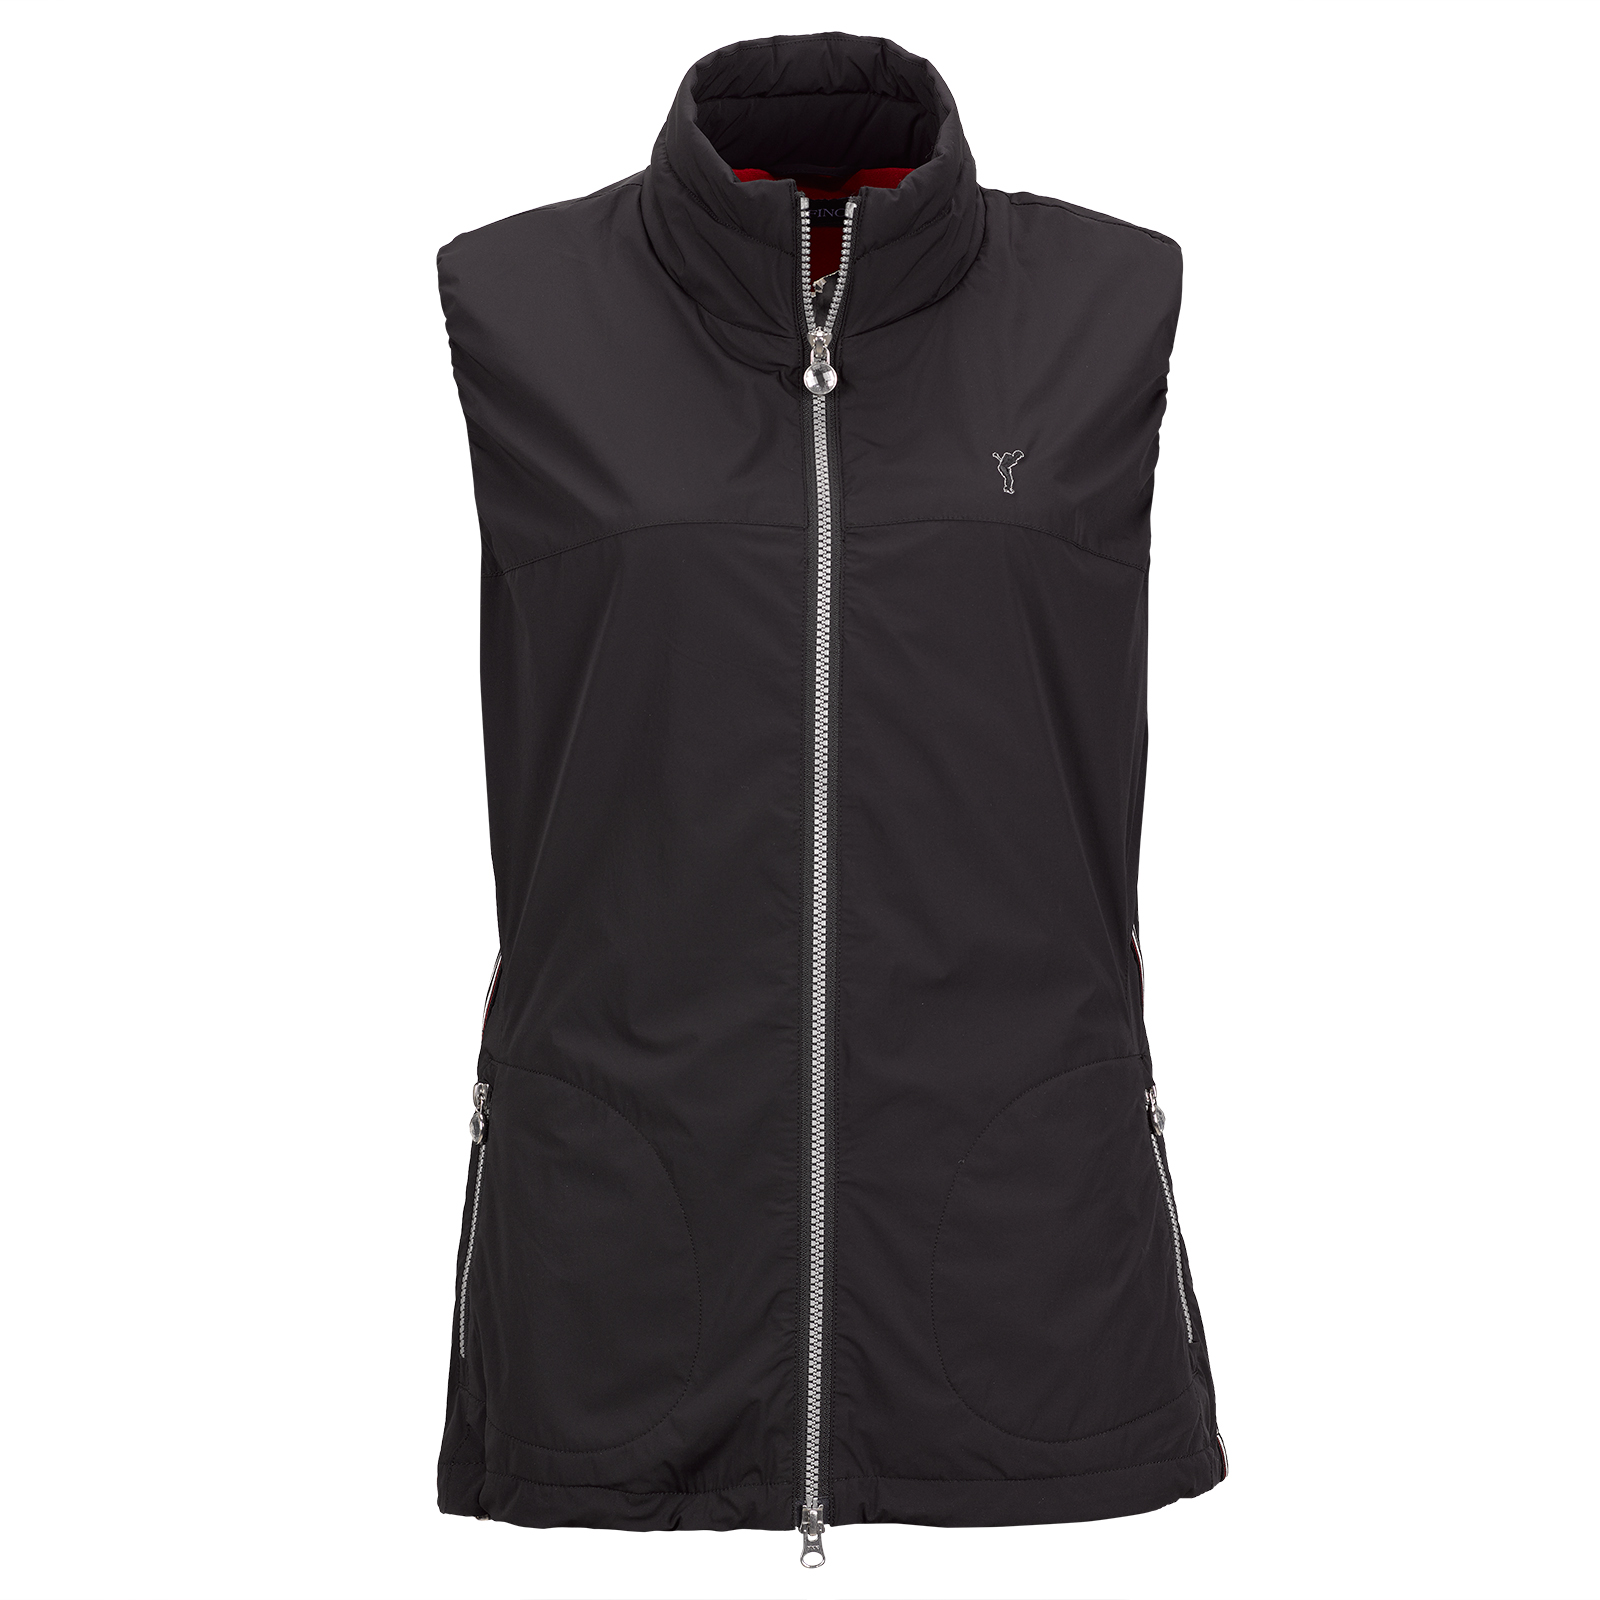 Ladies' premium golf vest with Wind Protection function